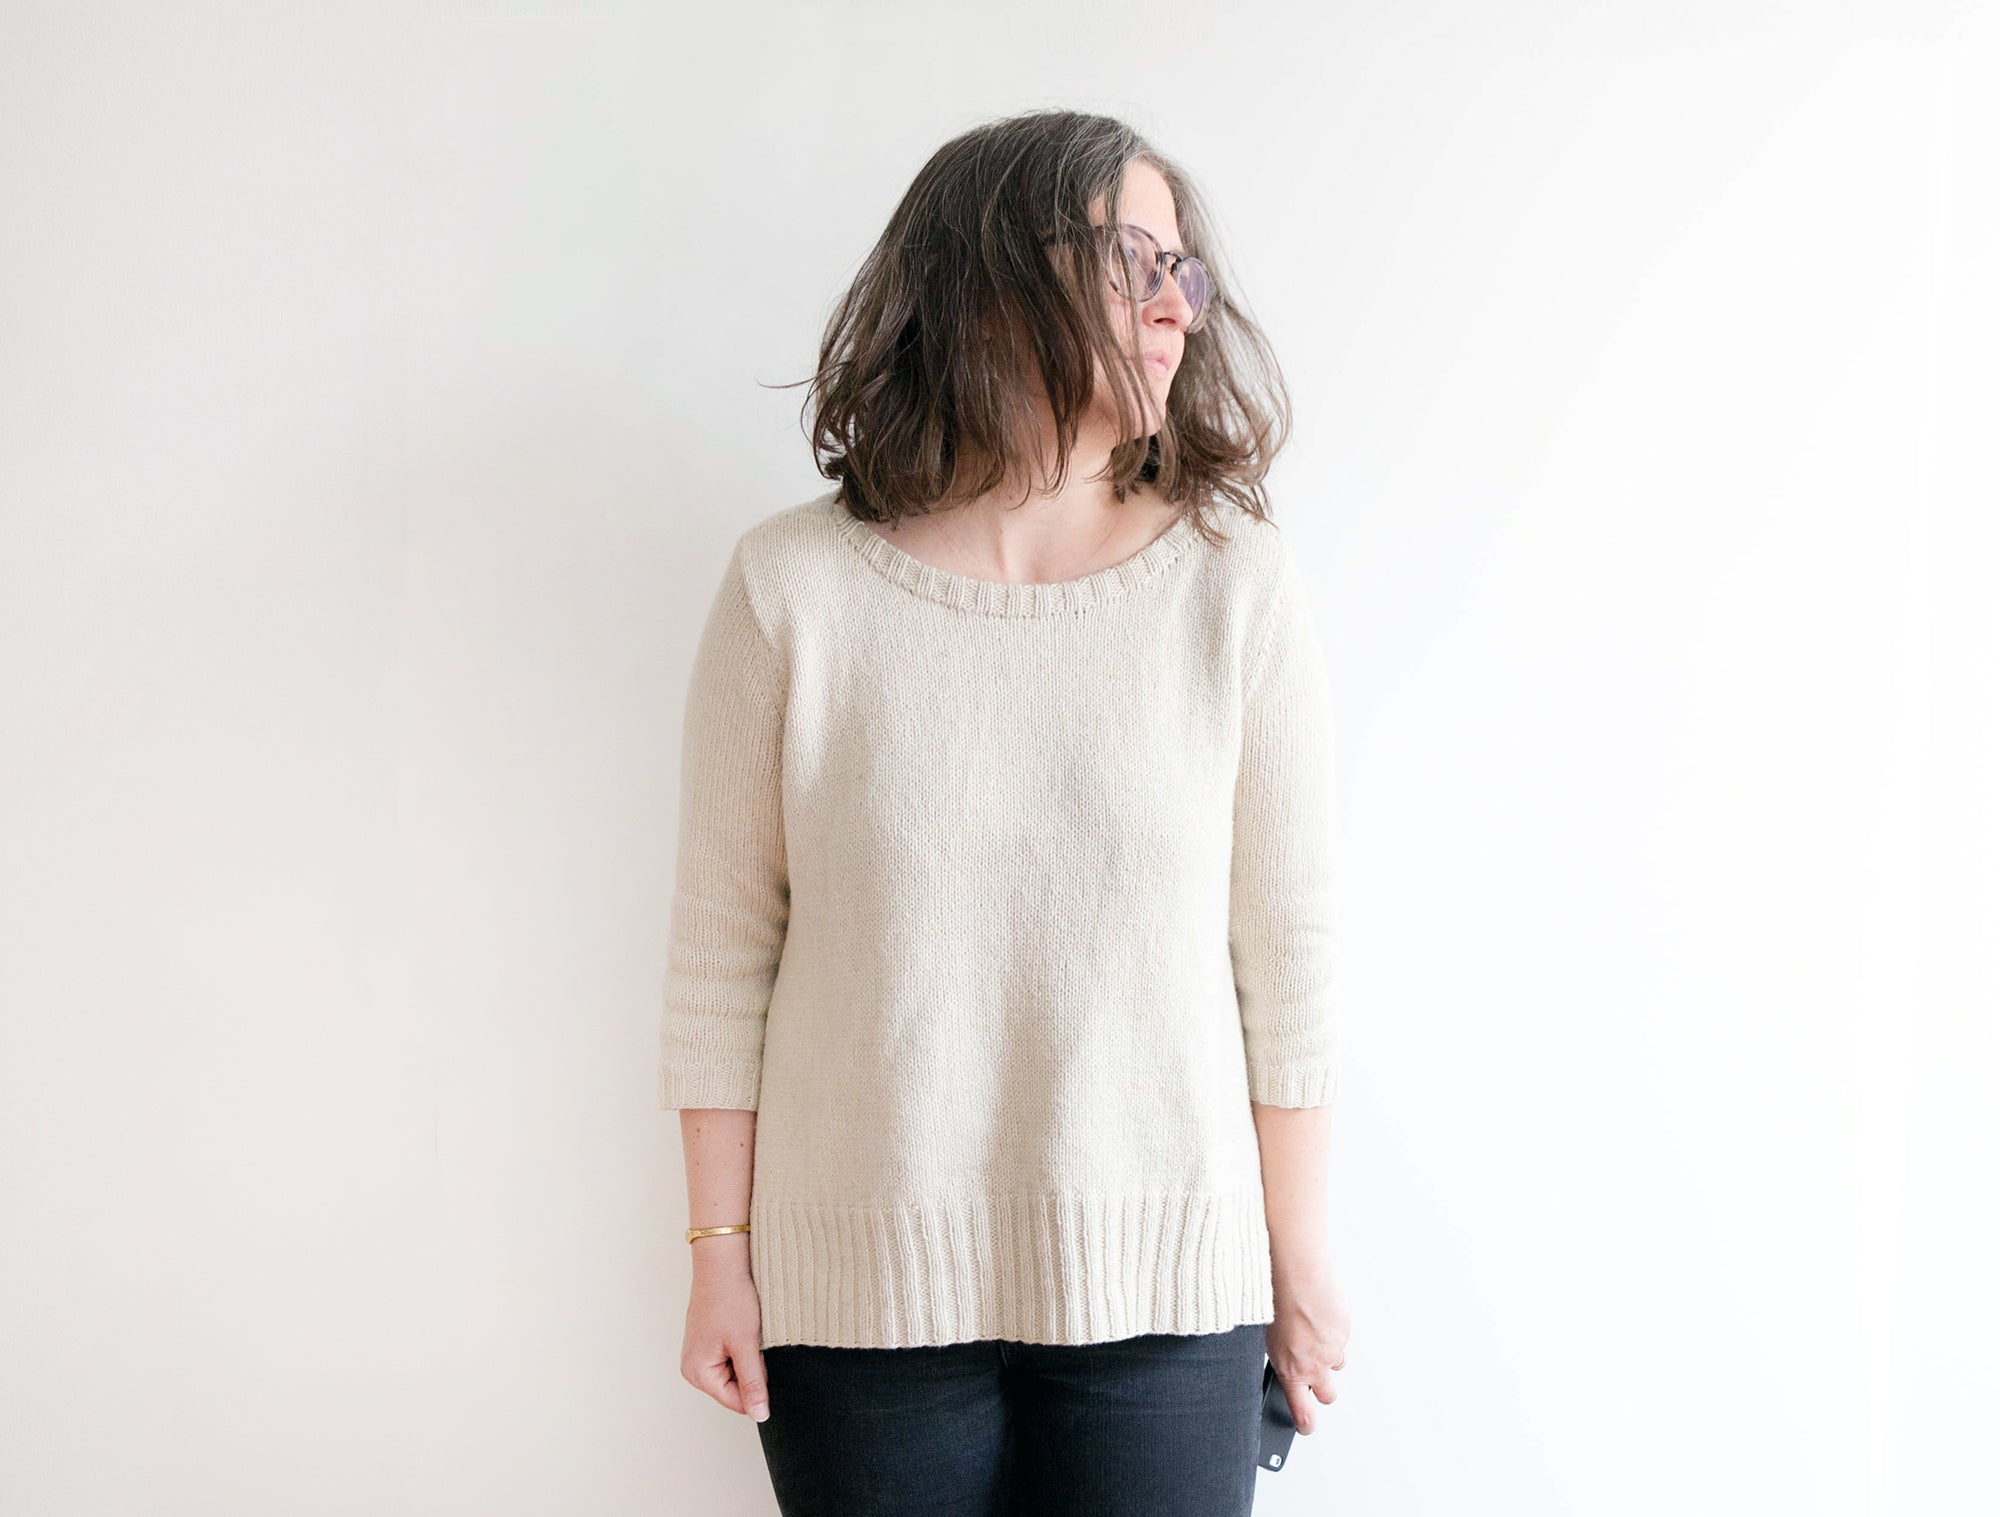 Bateau-Style Sweater | Grainline Studio